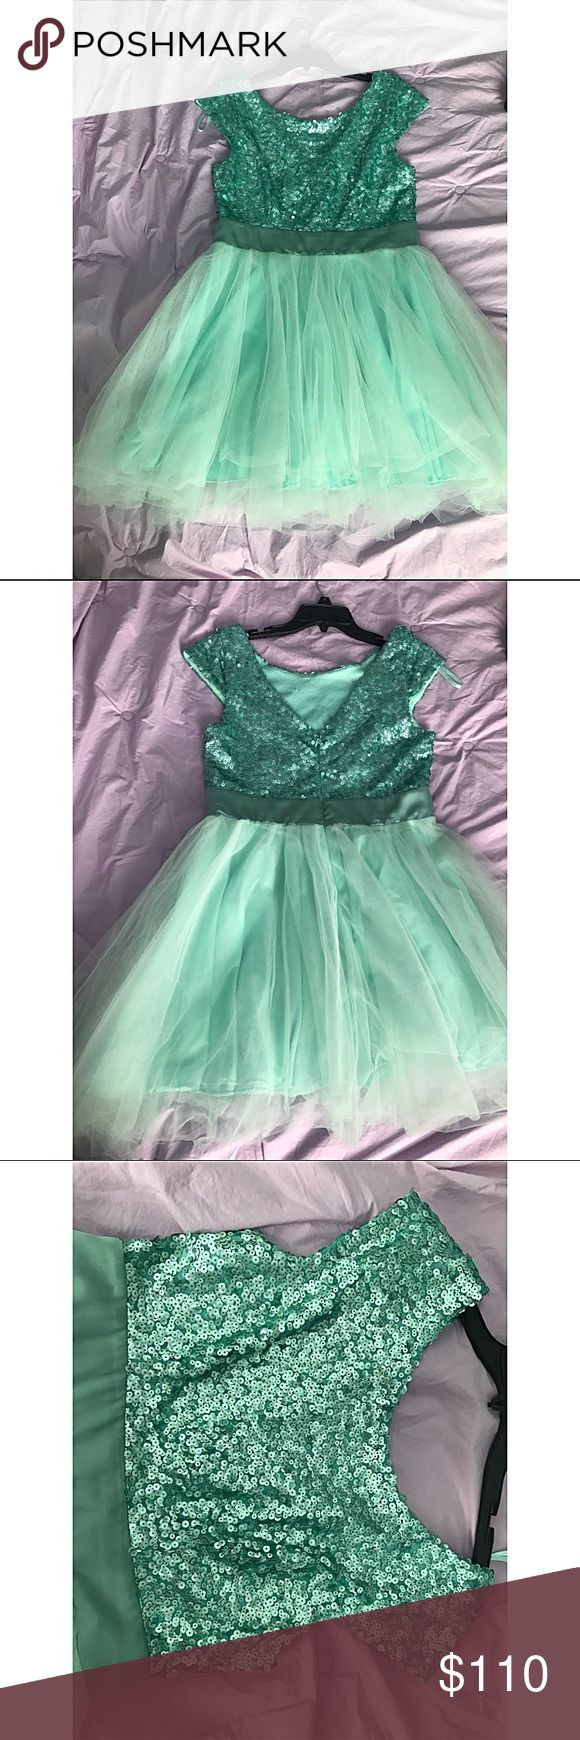 Short Turquoise Prom Dress Mini Prom Dress with sequins on top half. A-line princess scoop neck. Pleated. 33 inches Top to bottom. Dresses Prom